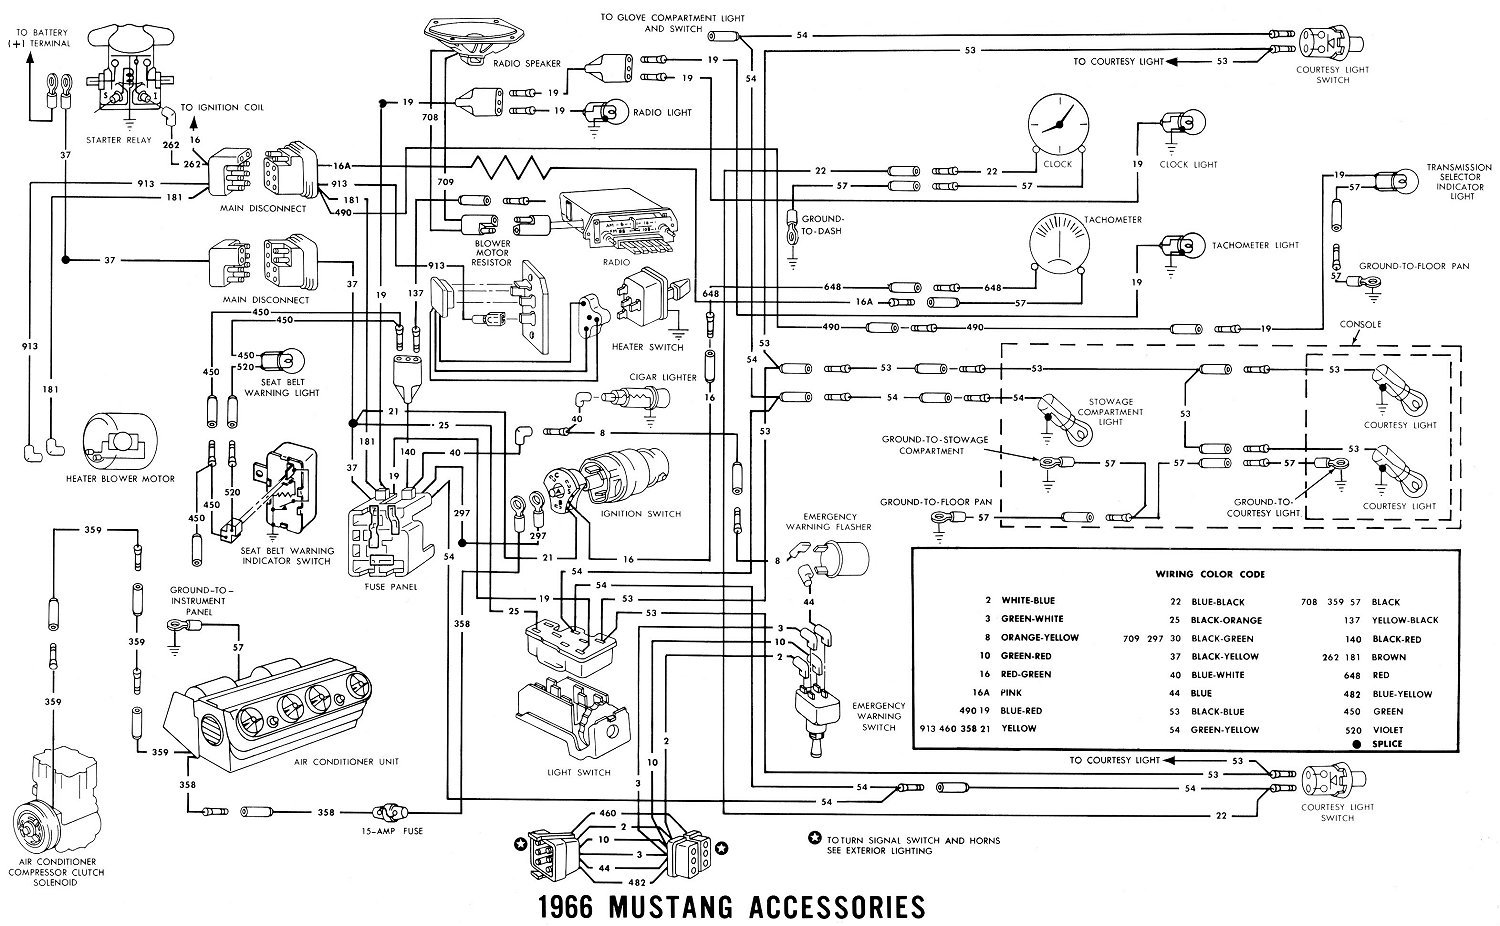 1966 mustang's main power supply to fuse box - ford ... 1966 mustang courtesy light wiring diagram 1966 mustang emergency flasher wiring diagram